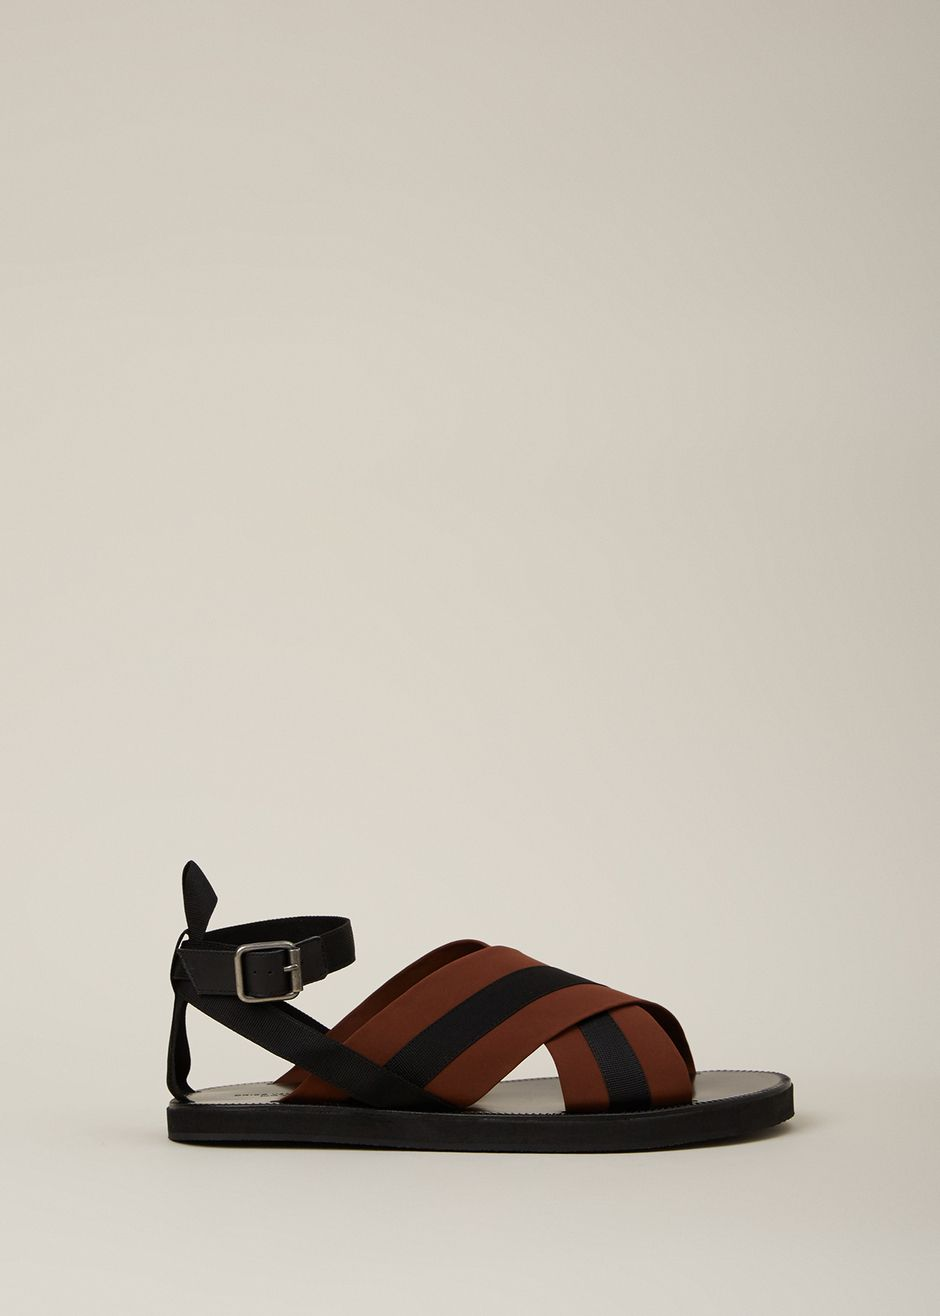 discount explore Dries Van Noten Leather Crossover Sandals free shipping cheap quality 2HPd5mm